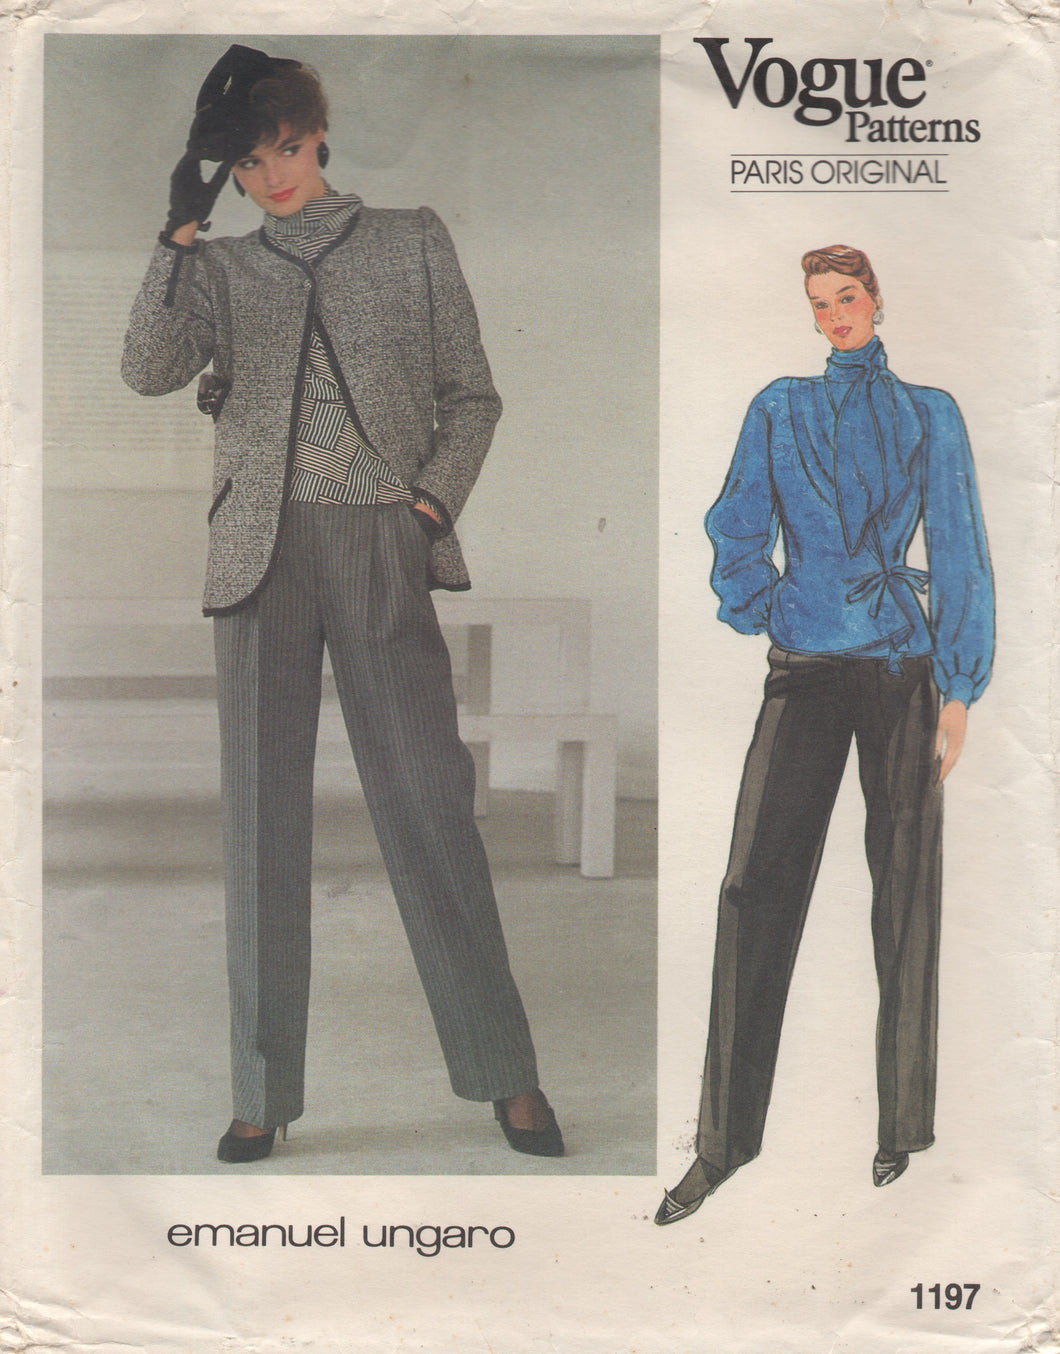 1980's Vogue Paris Original Wrap Blouse with Bow detail, Jacket and High Waisted Pants Pattern - Emanuel Ungaro - Bust 34